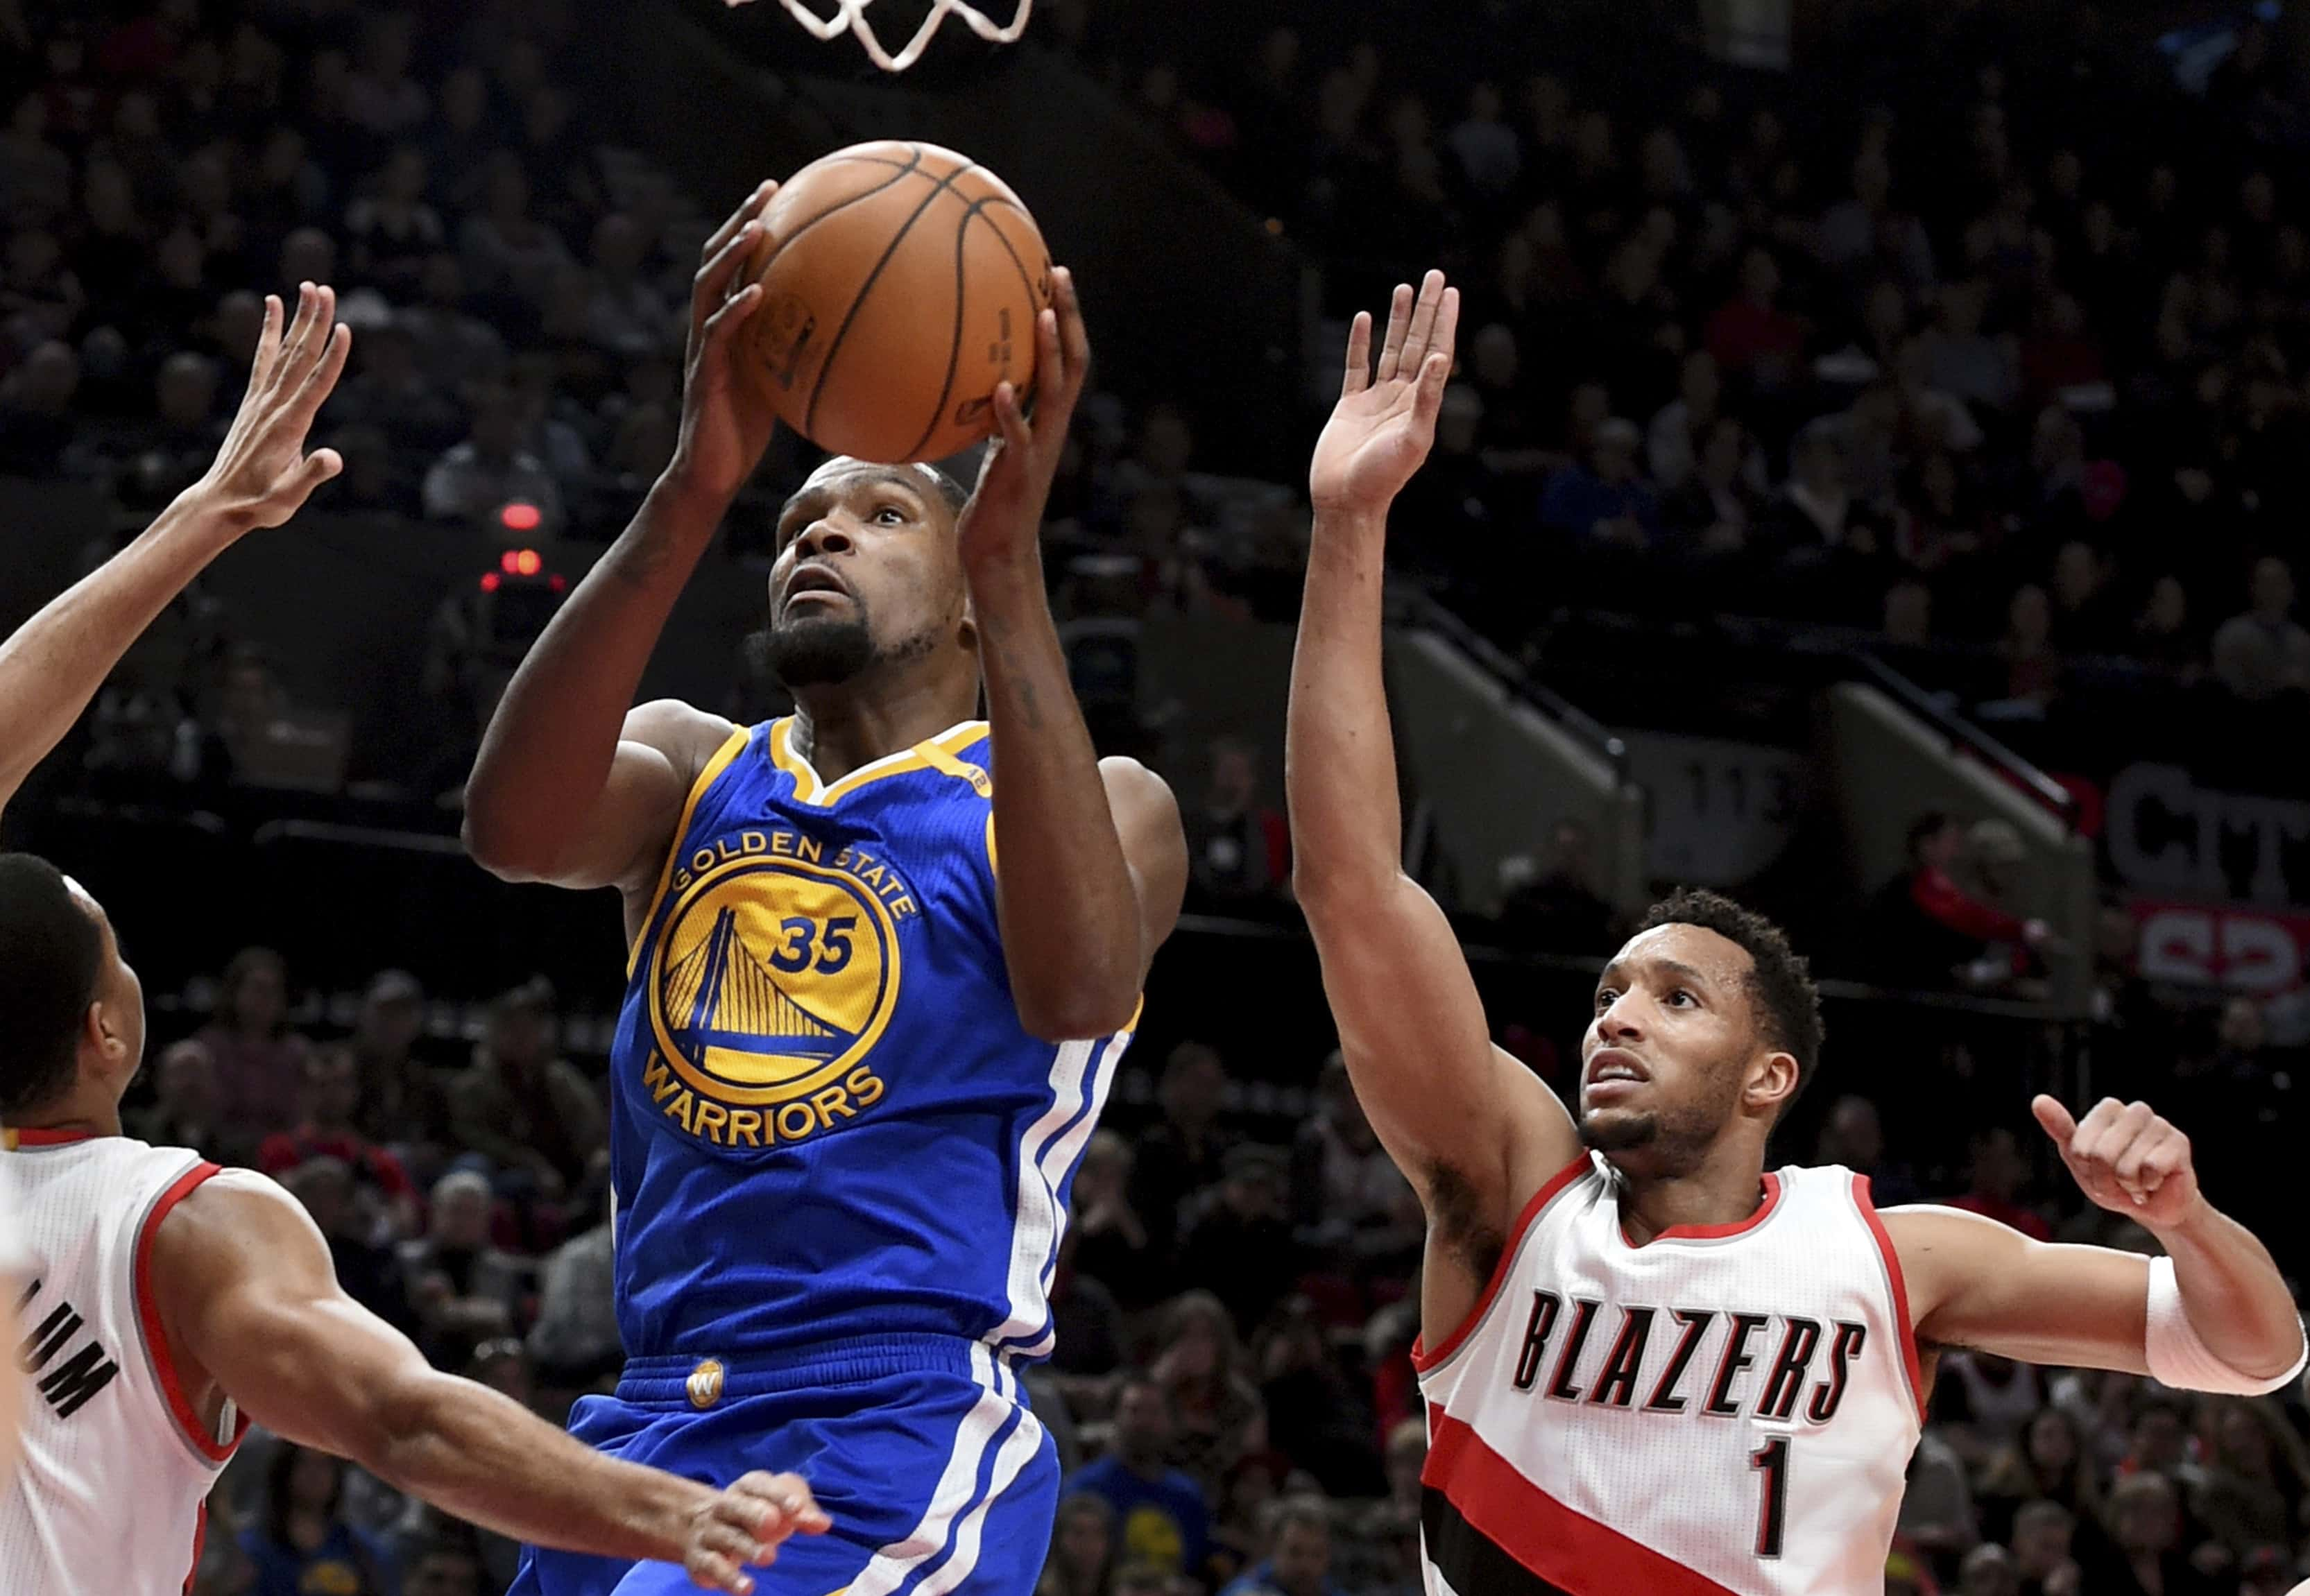 Golden State Warriors forward Kevin Durant drives to the basket past Portland Trail Blazers guard Evan Turner during the first half of an NBA basketball game in Portland, Ore., Sunday, Jan. 29, 2017. (AP Photo/Steve Dykes)